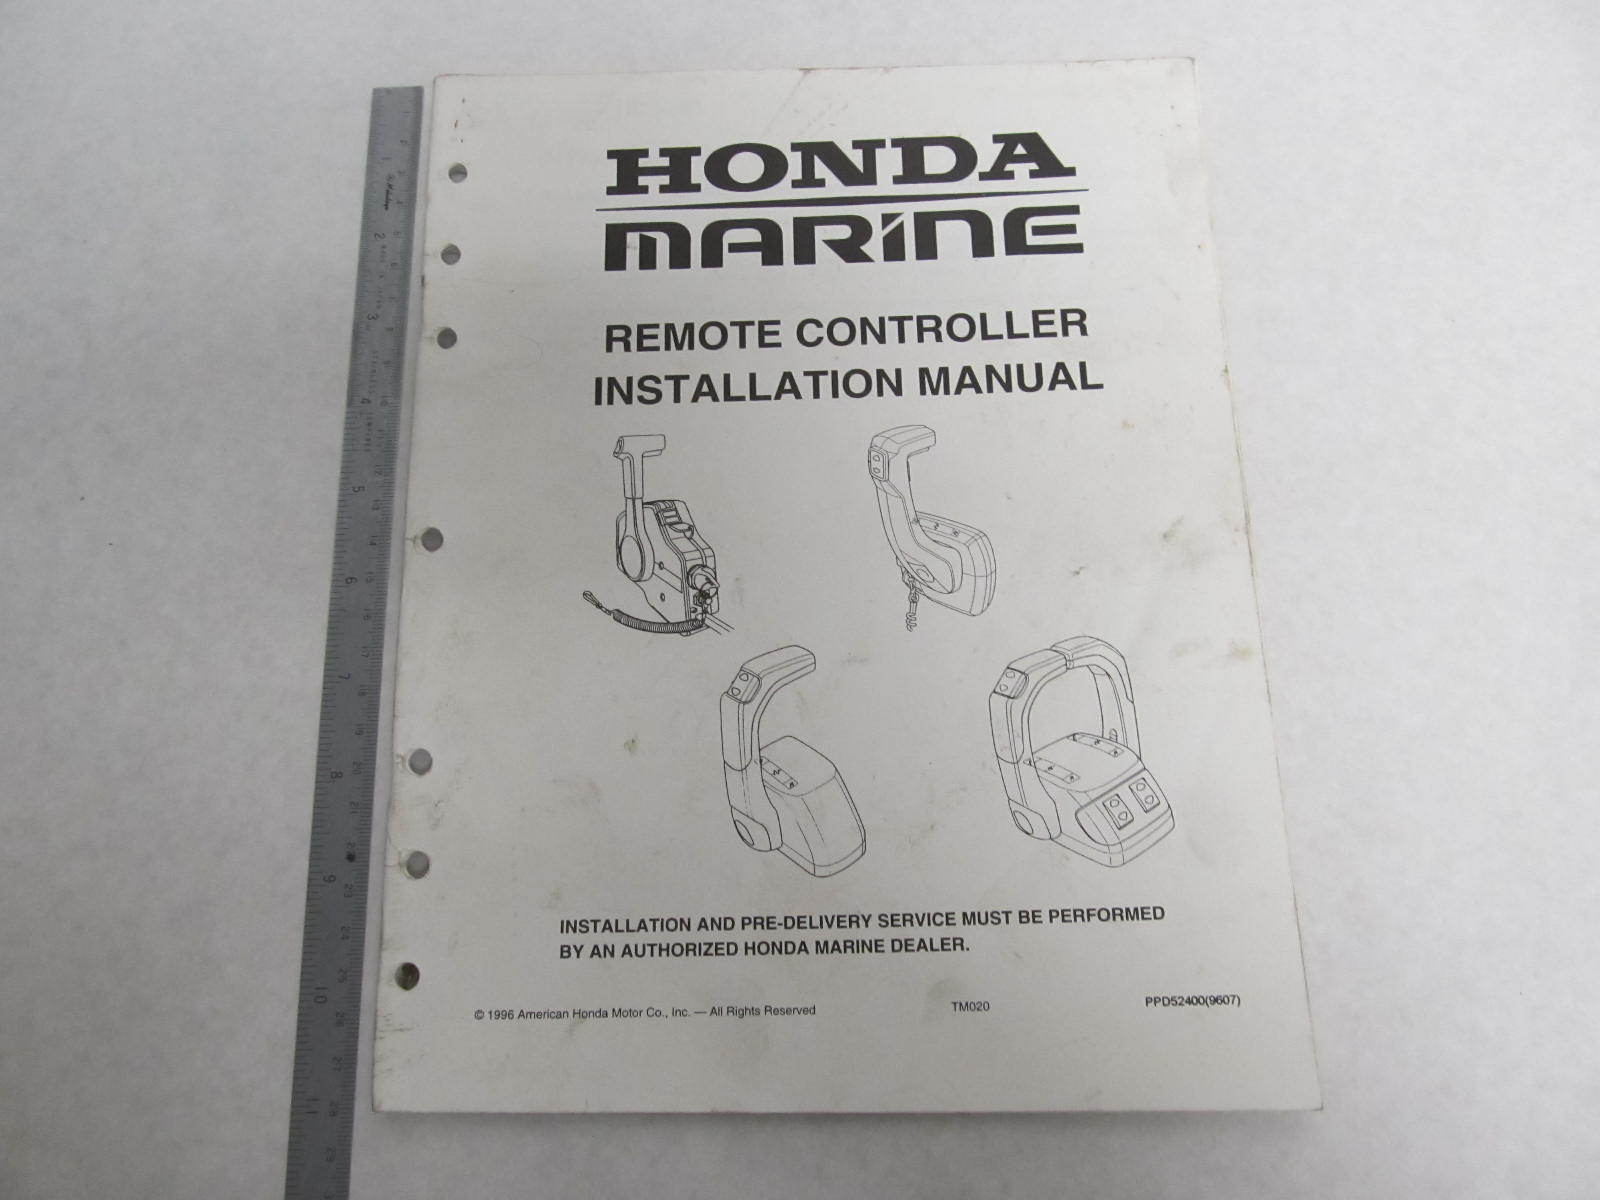 hight resolution of ppd52400 honda marine remote controller installation manual 15 hp green bay propeller marine llc